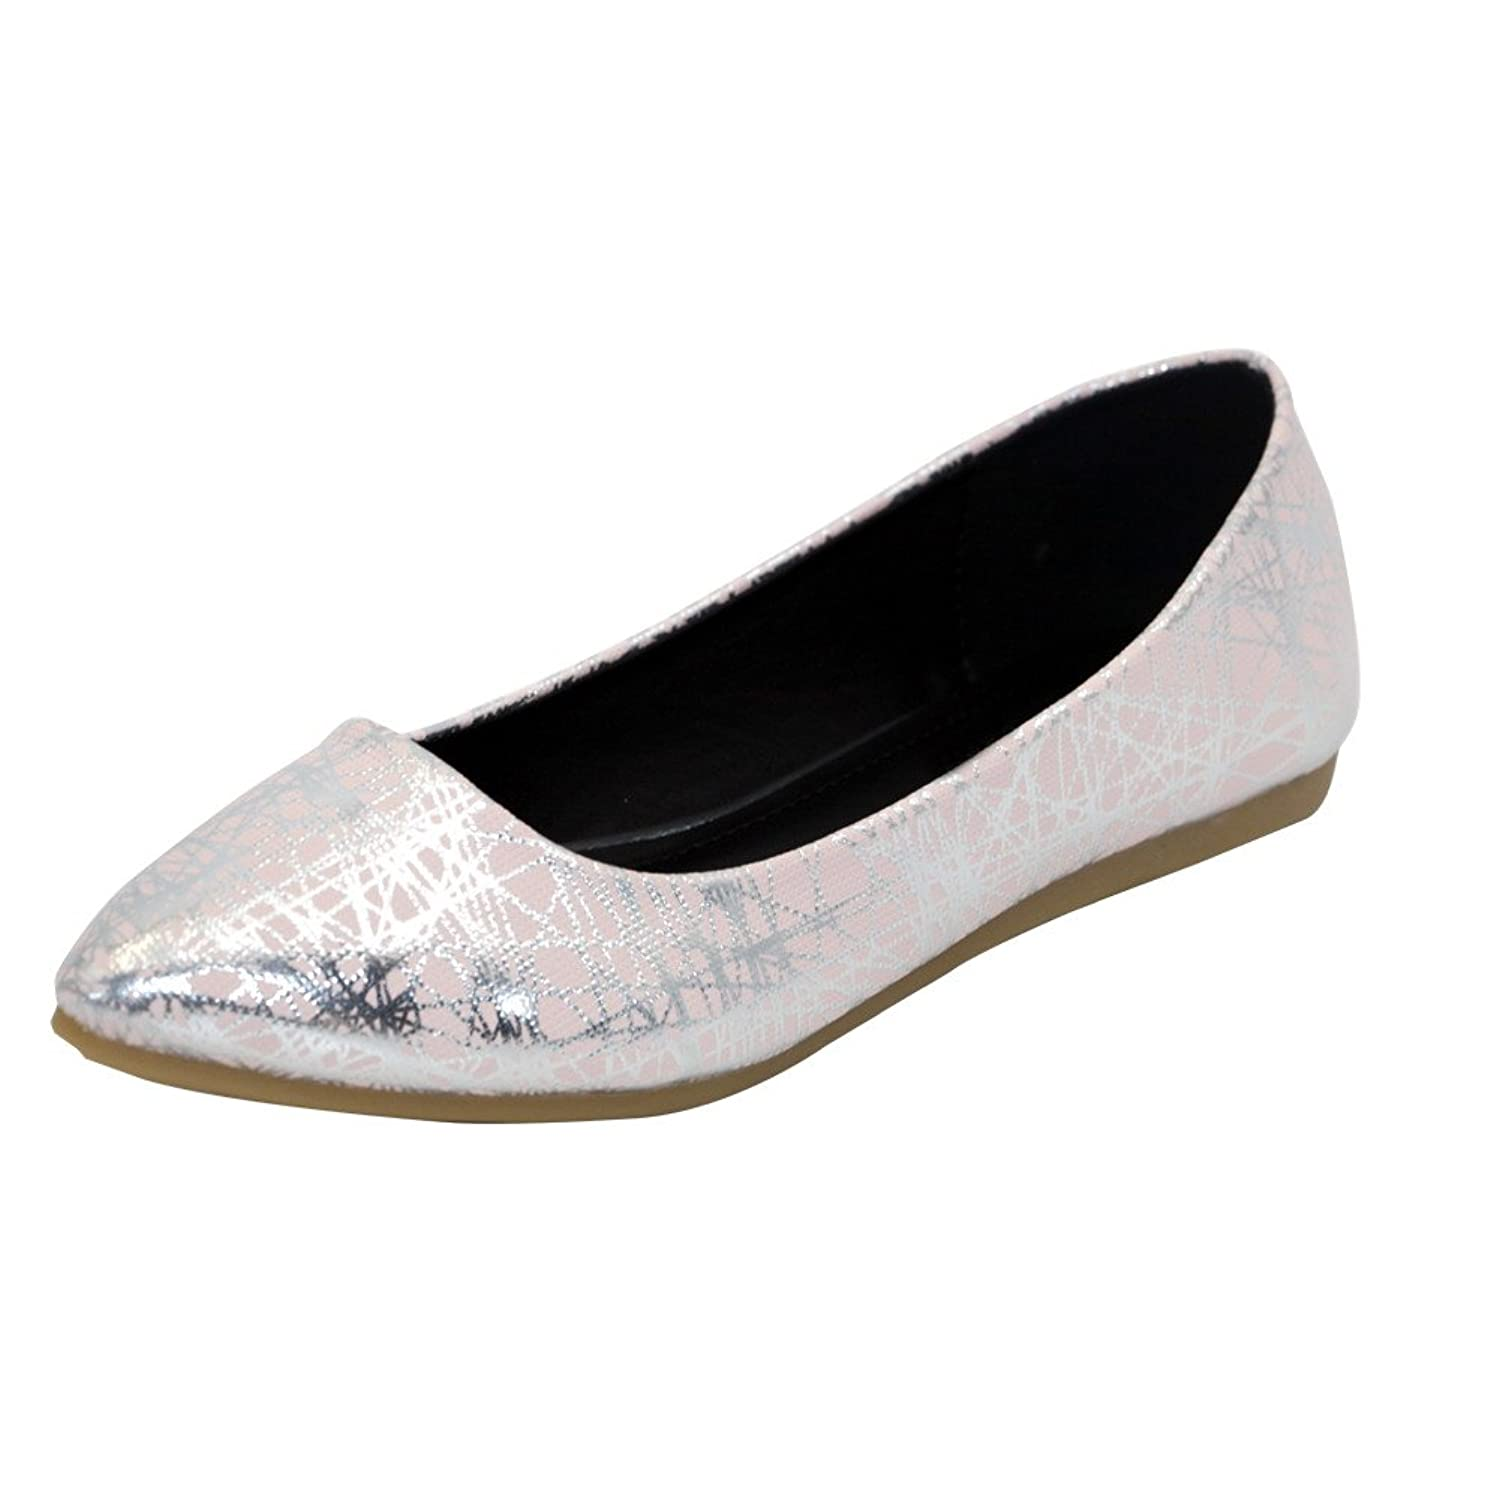 AalarDom Women's Soft Material Pointed-Toe No-Heel Assorted Color Pull-On Pu Flats-Shoes